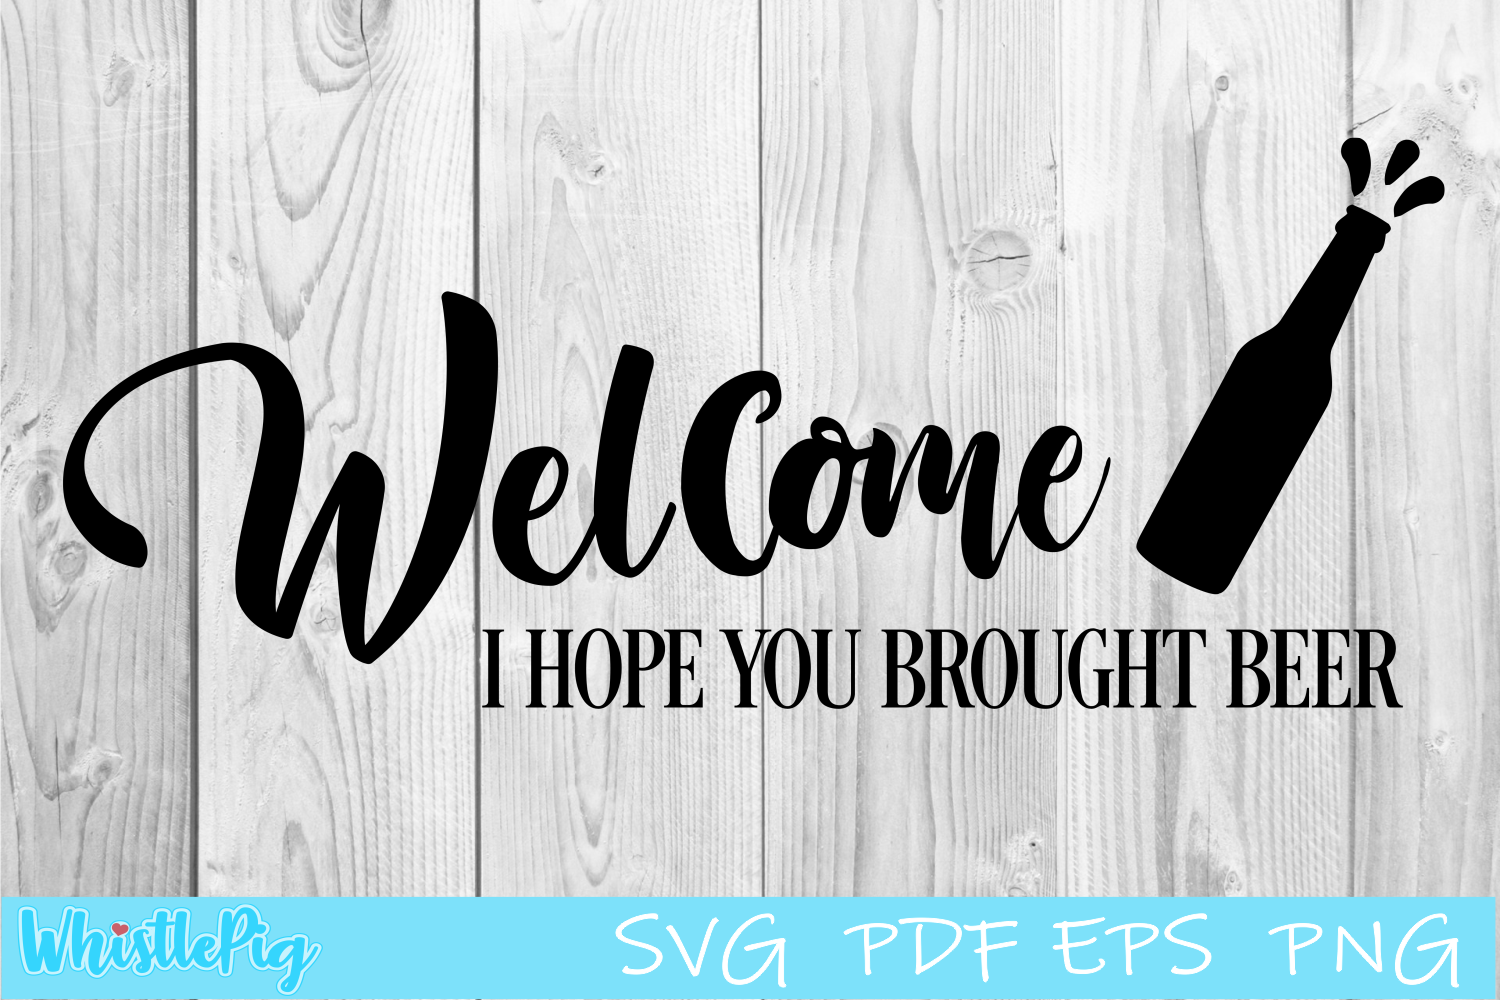 Welcome I Hope You Brought Beer - SVG Cut File - Funny SVG example image 2